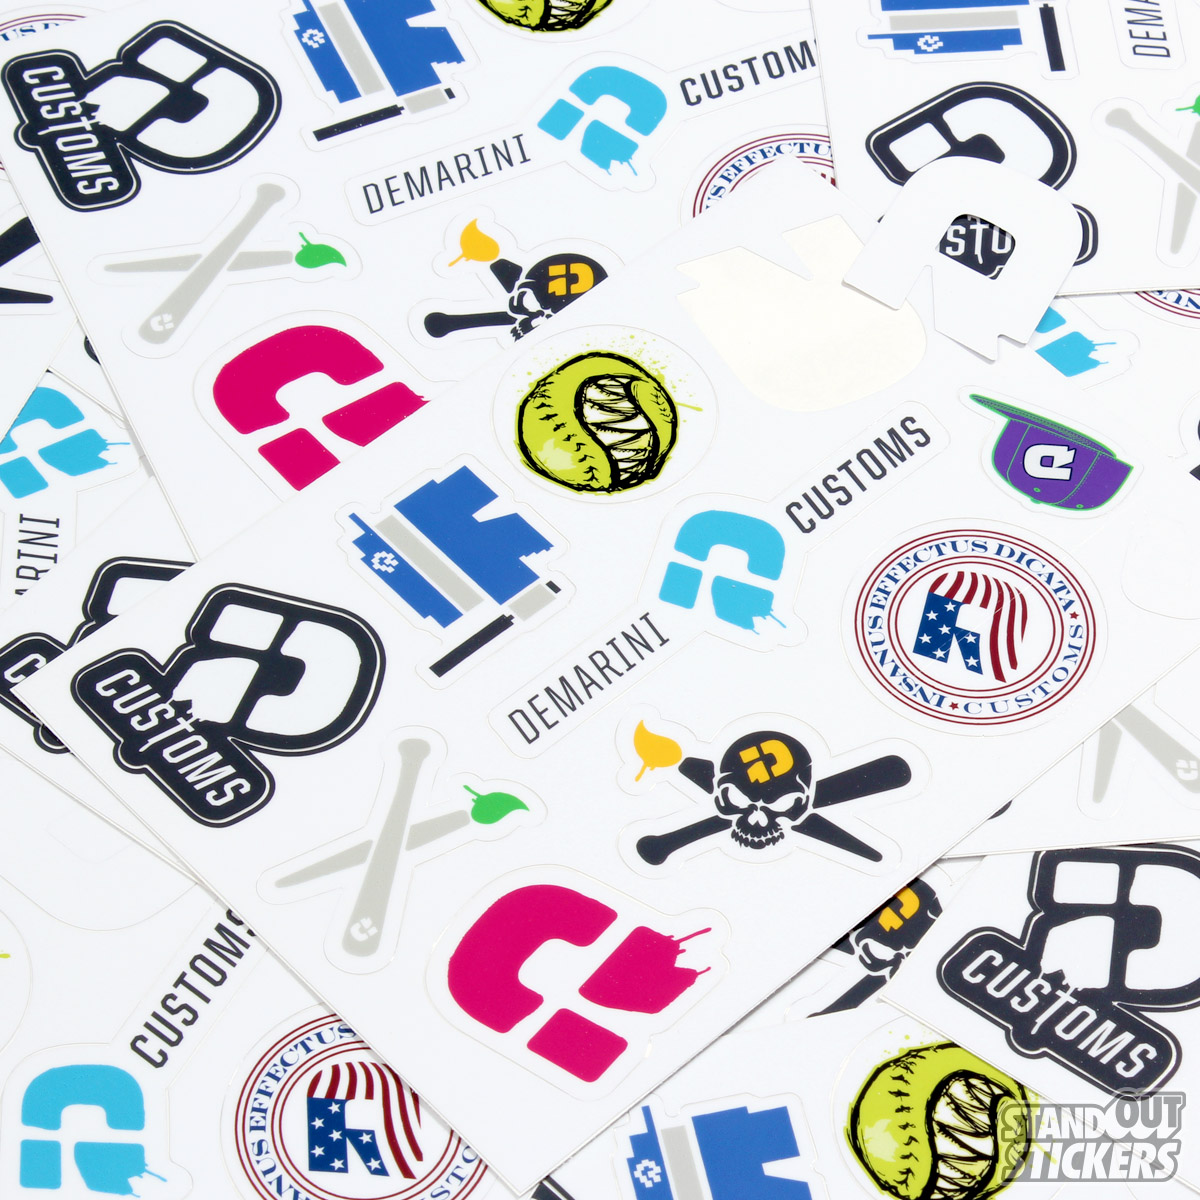 Demarini baseball kiss cut custom sticker sheets